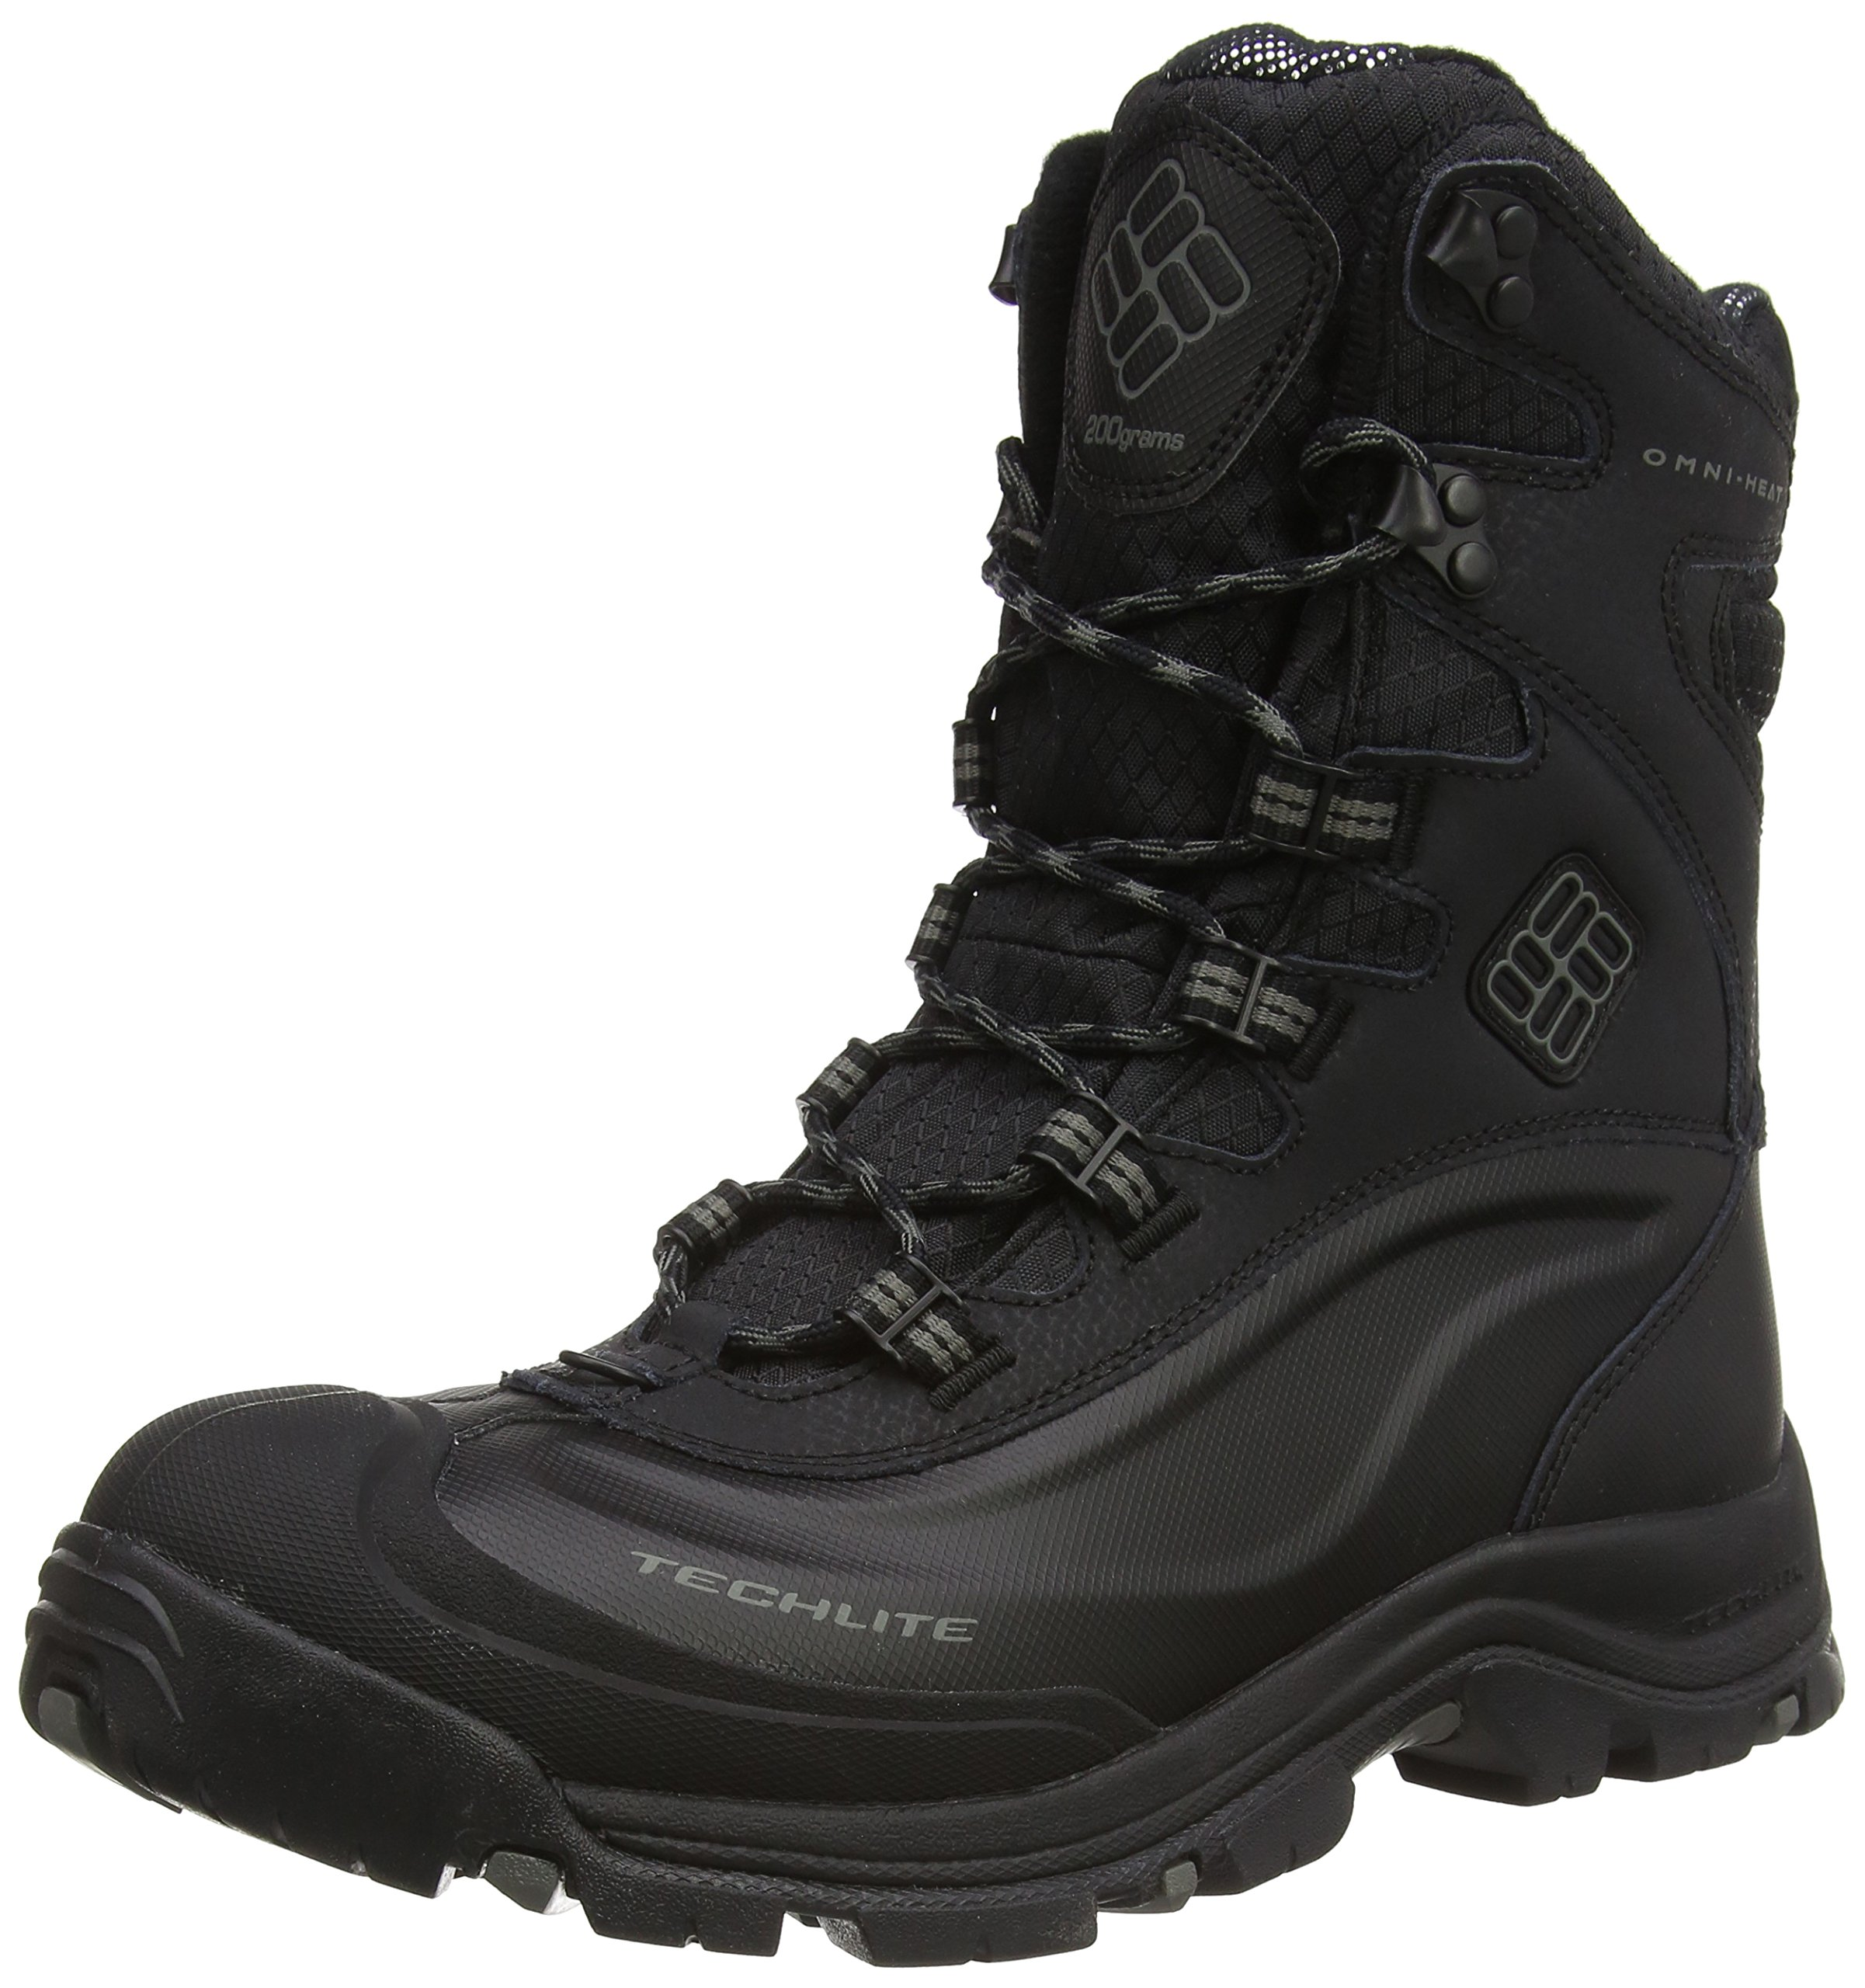 Columbia Men's Bugaboot Plus III Omni Cold Weather Boot, Black/Charcoal, 10.5 D US